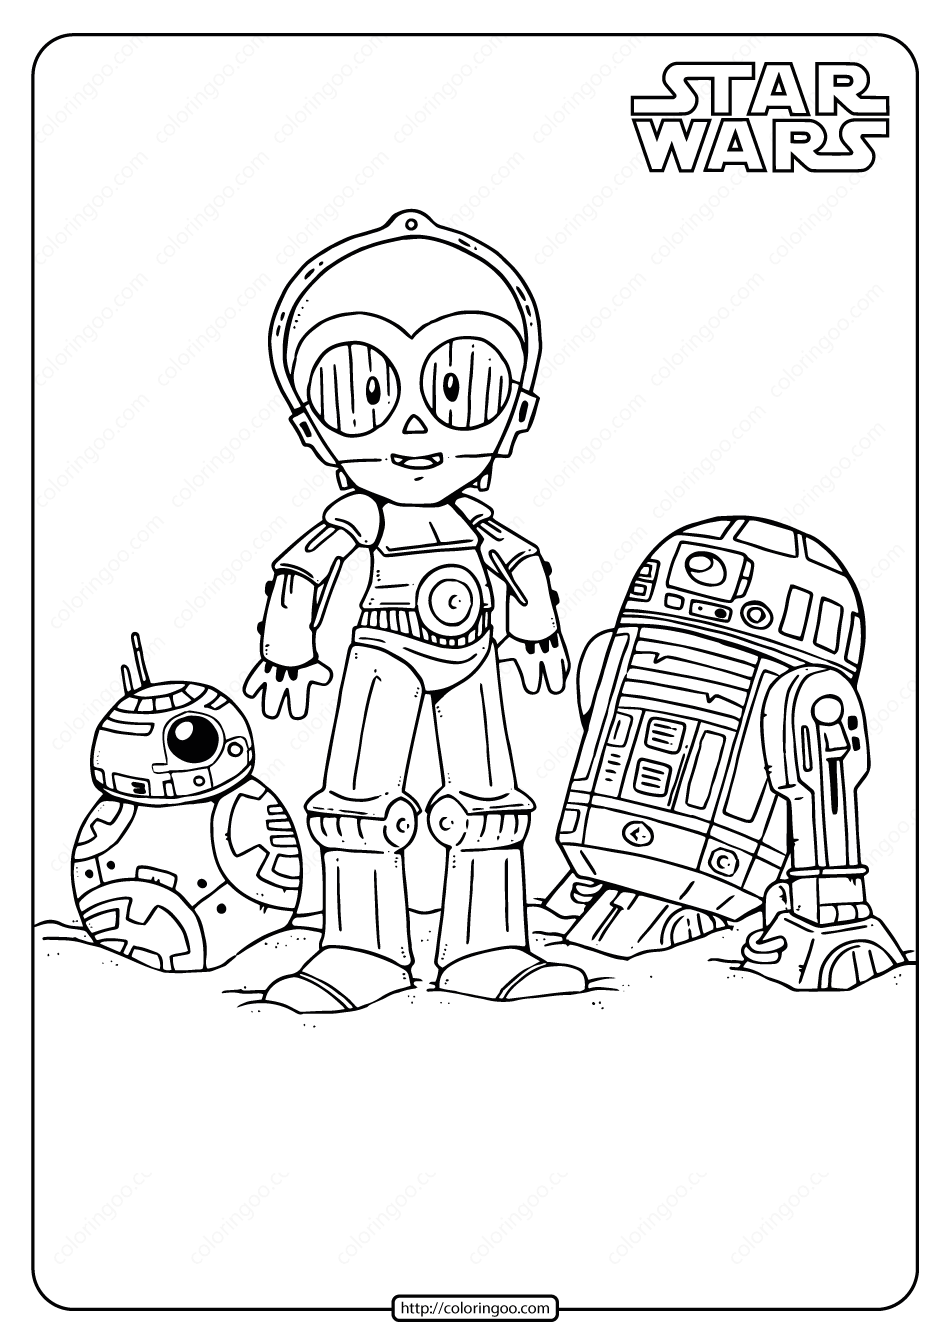 Printable Star Wars Droids Coloring Pages Star Wars Coloring Book Star Wars Drawings Star Wars Art Drawings